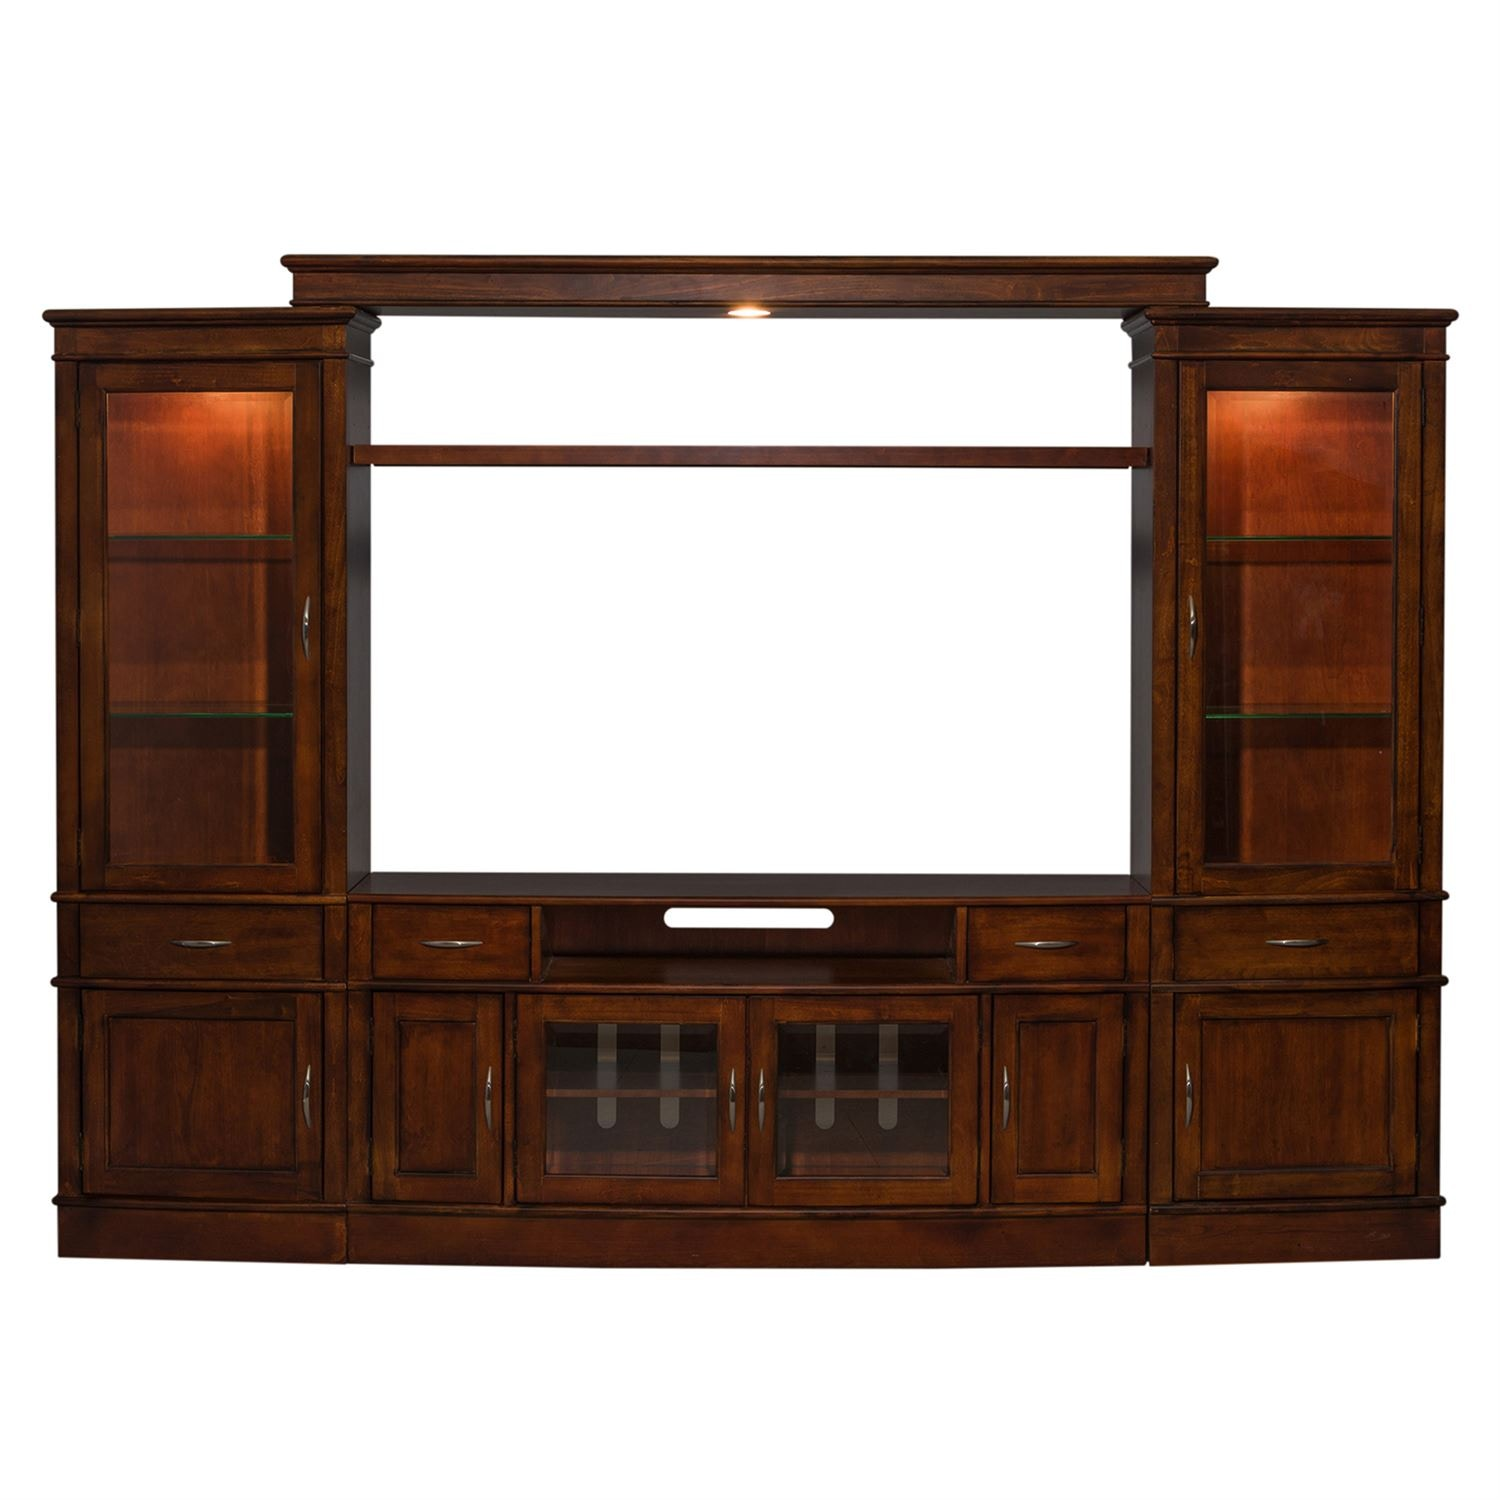 Charmant Liberty Furniture Home Entertainment Entertainment Center With Piers